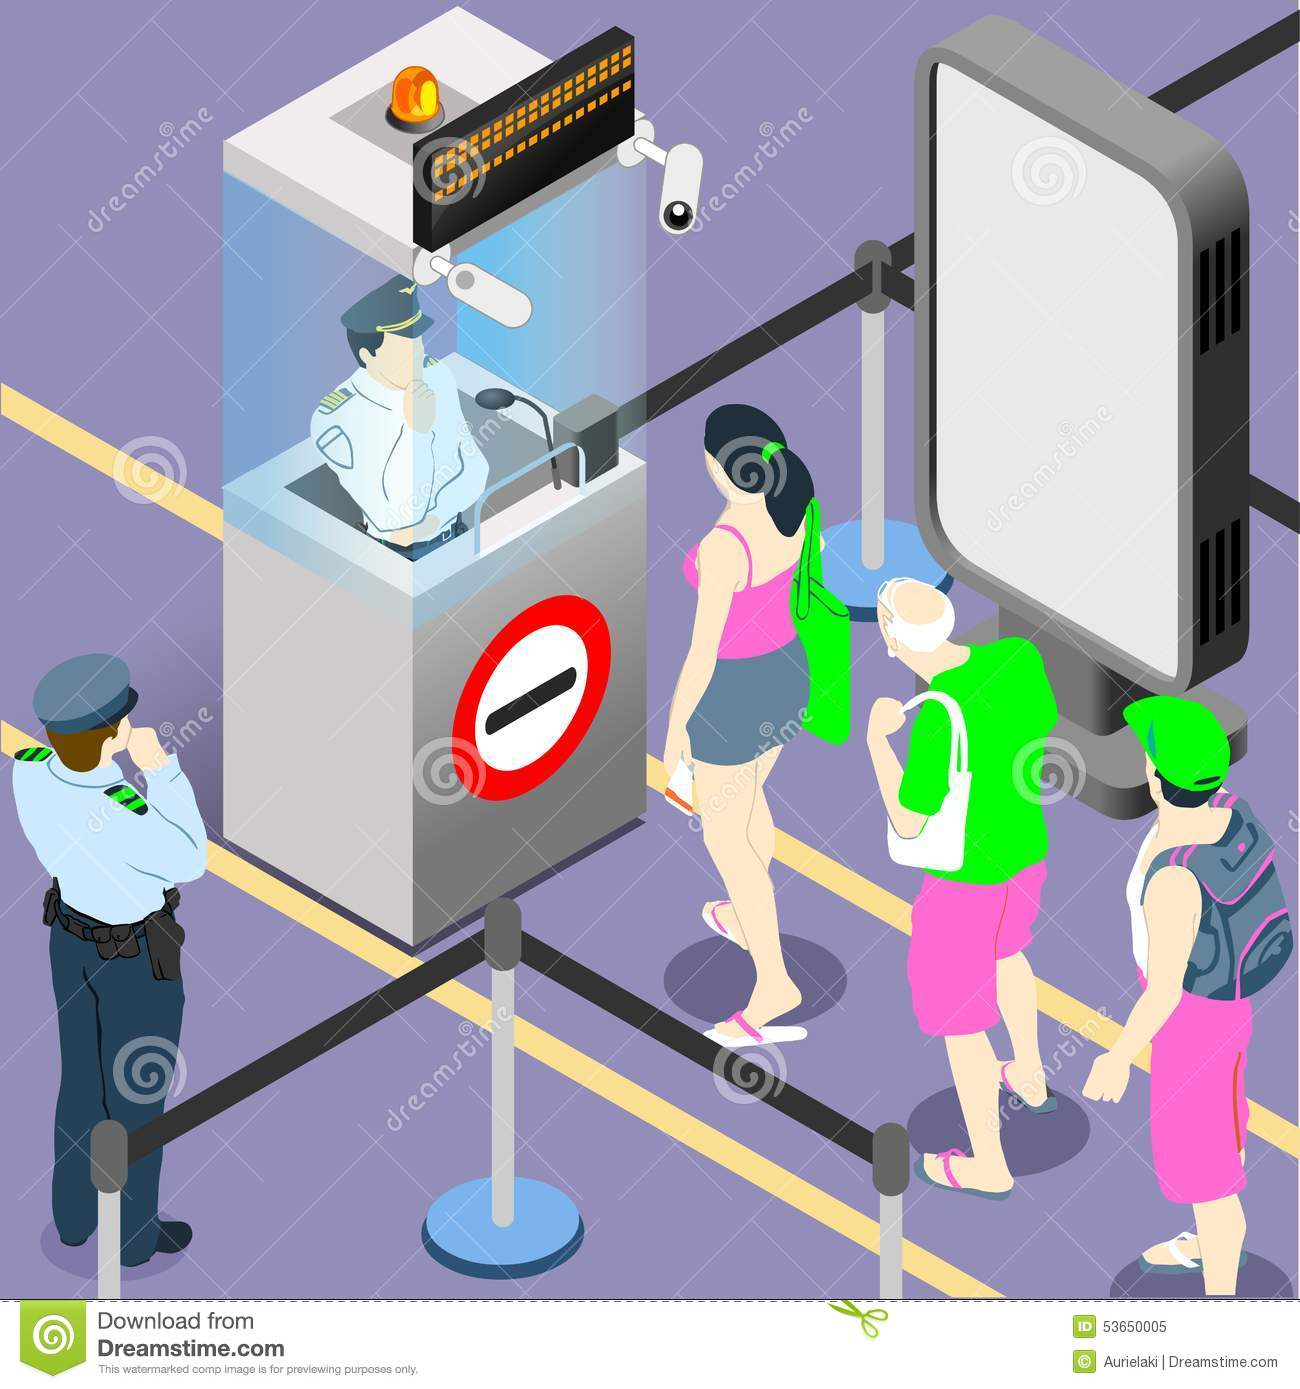 security check clipart - photo #28